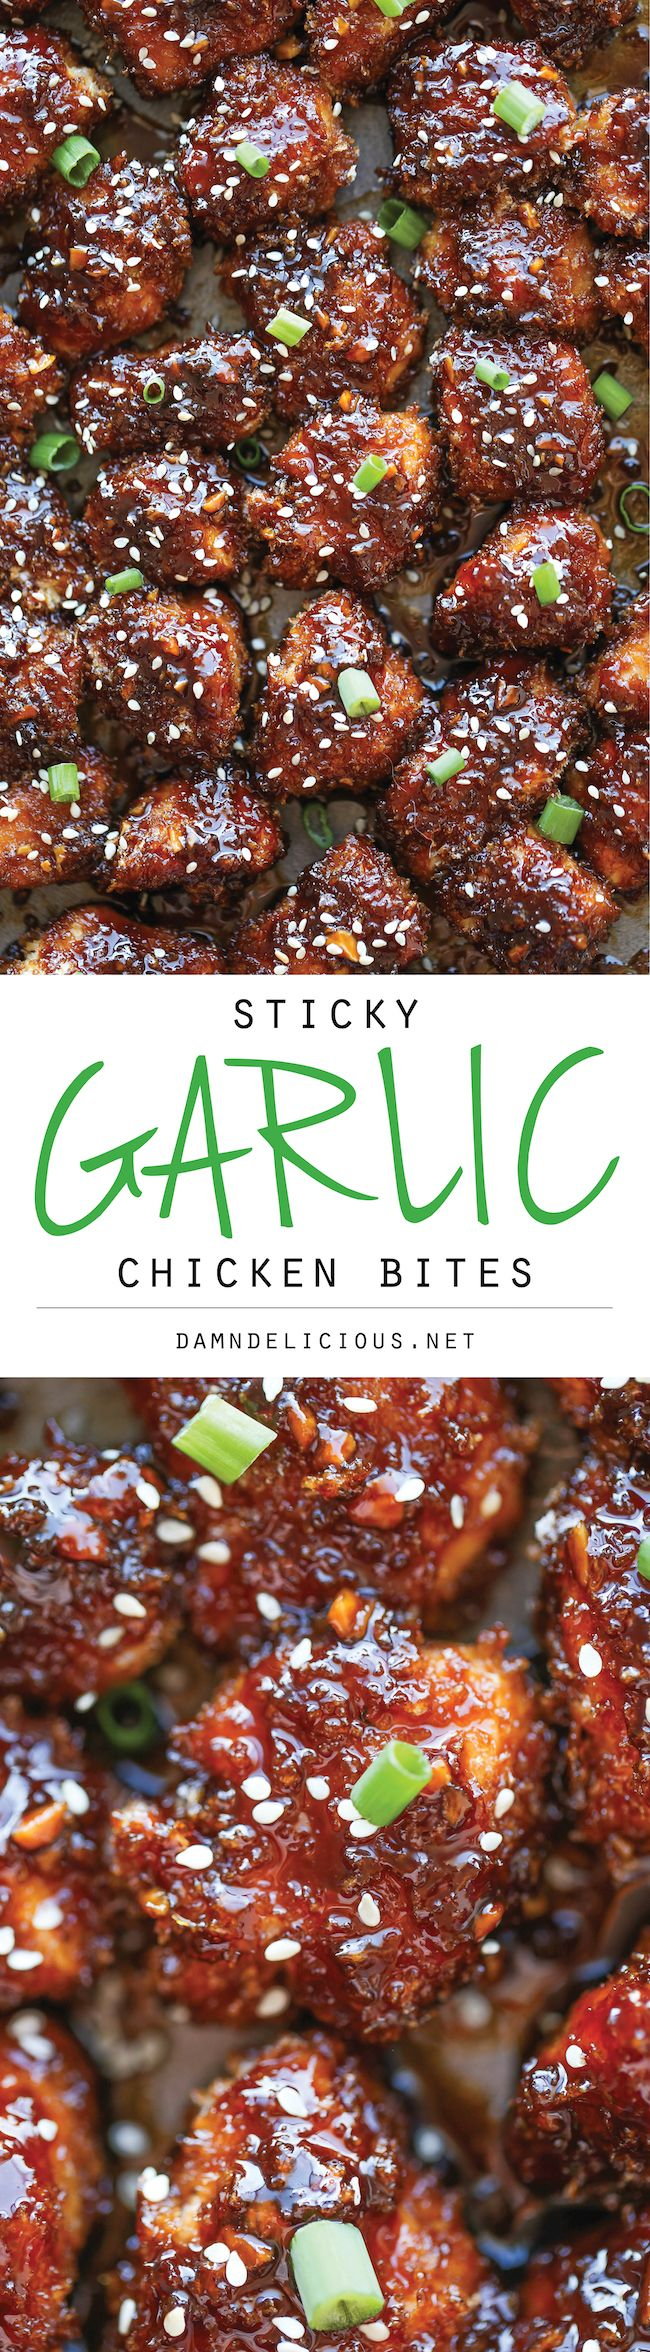 Sticky Garlic Chicken Bites - These easy baked chicken nuggets are sweet, sticky, and just finger-licking amazing!